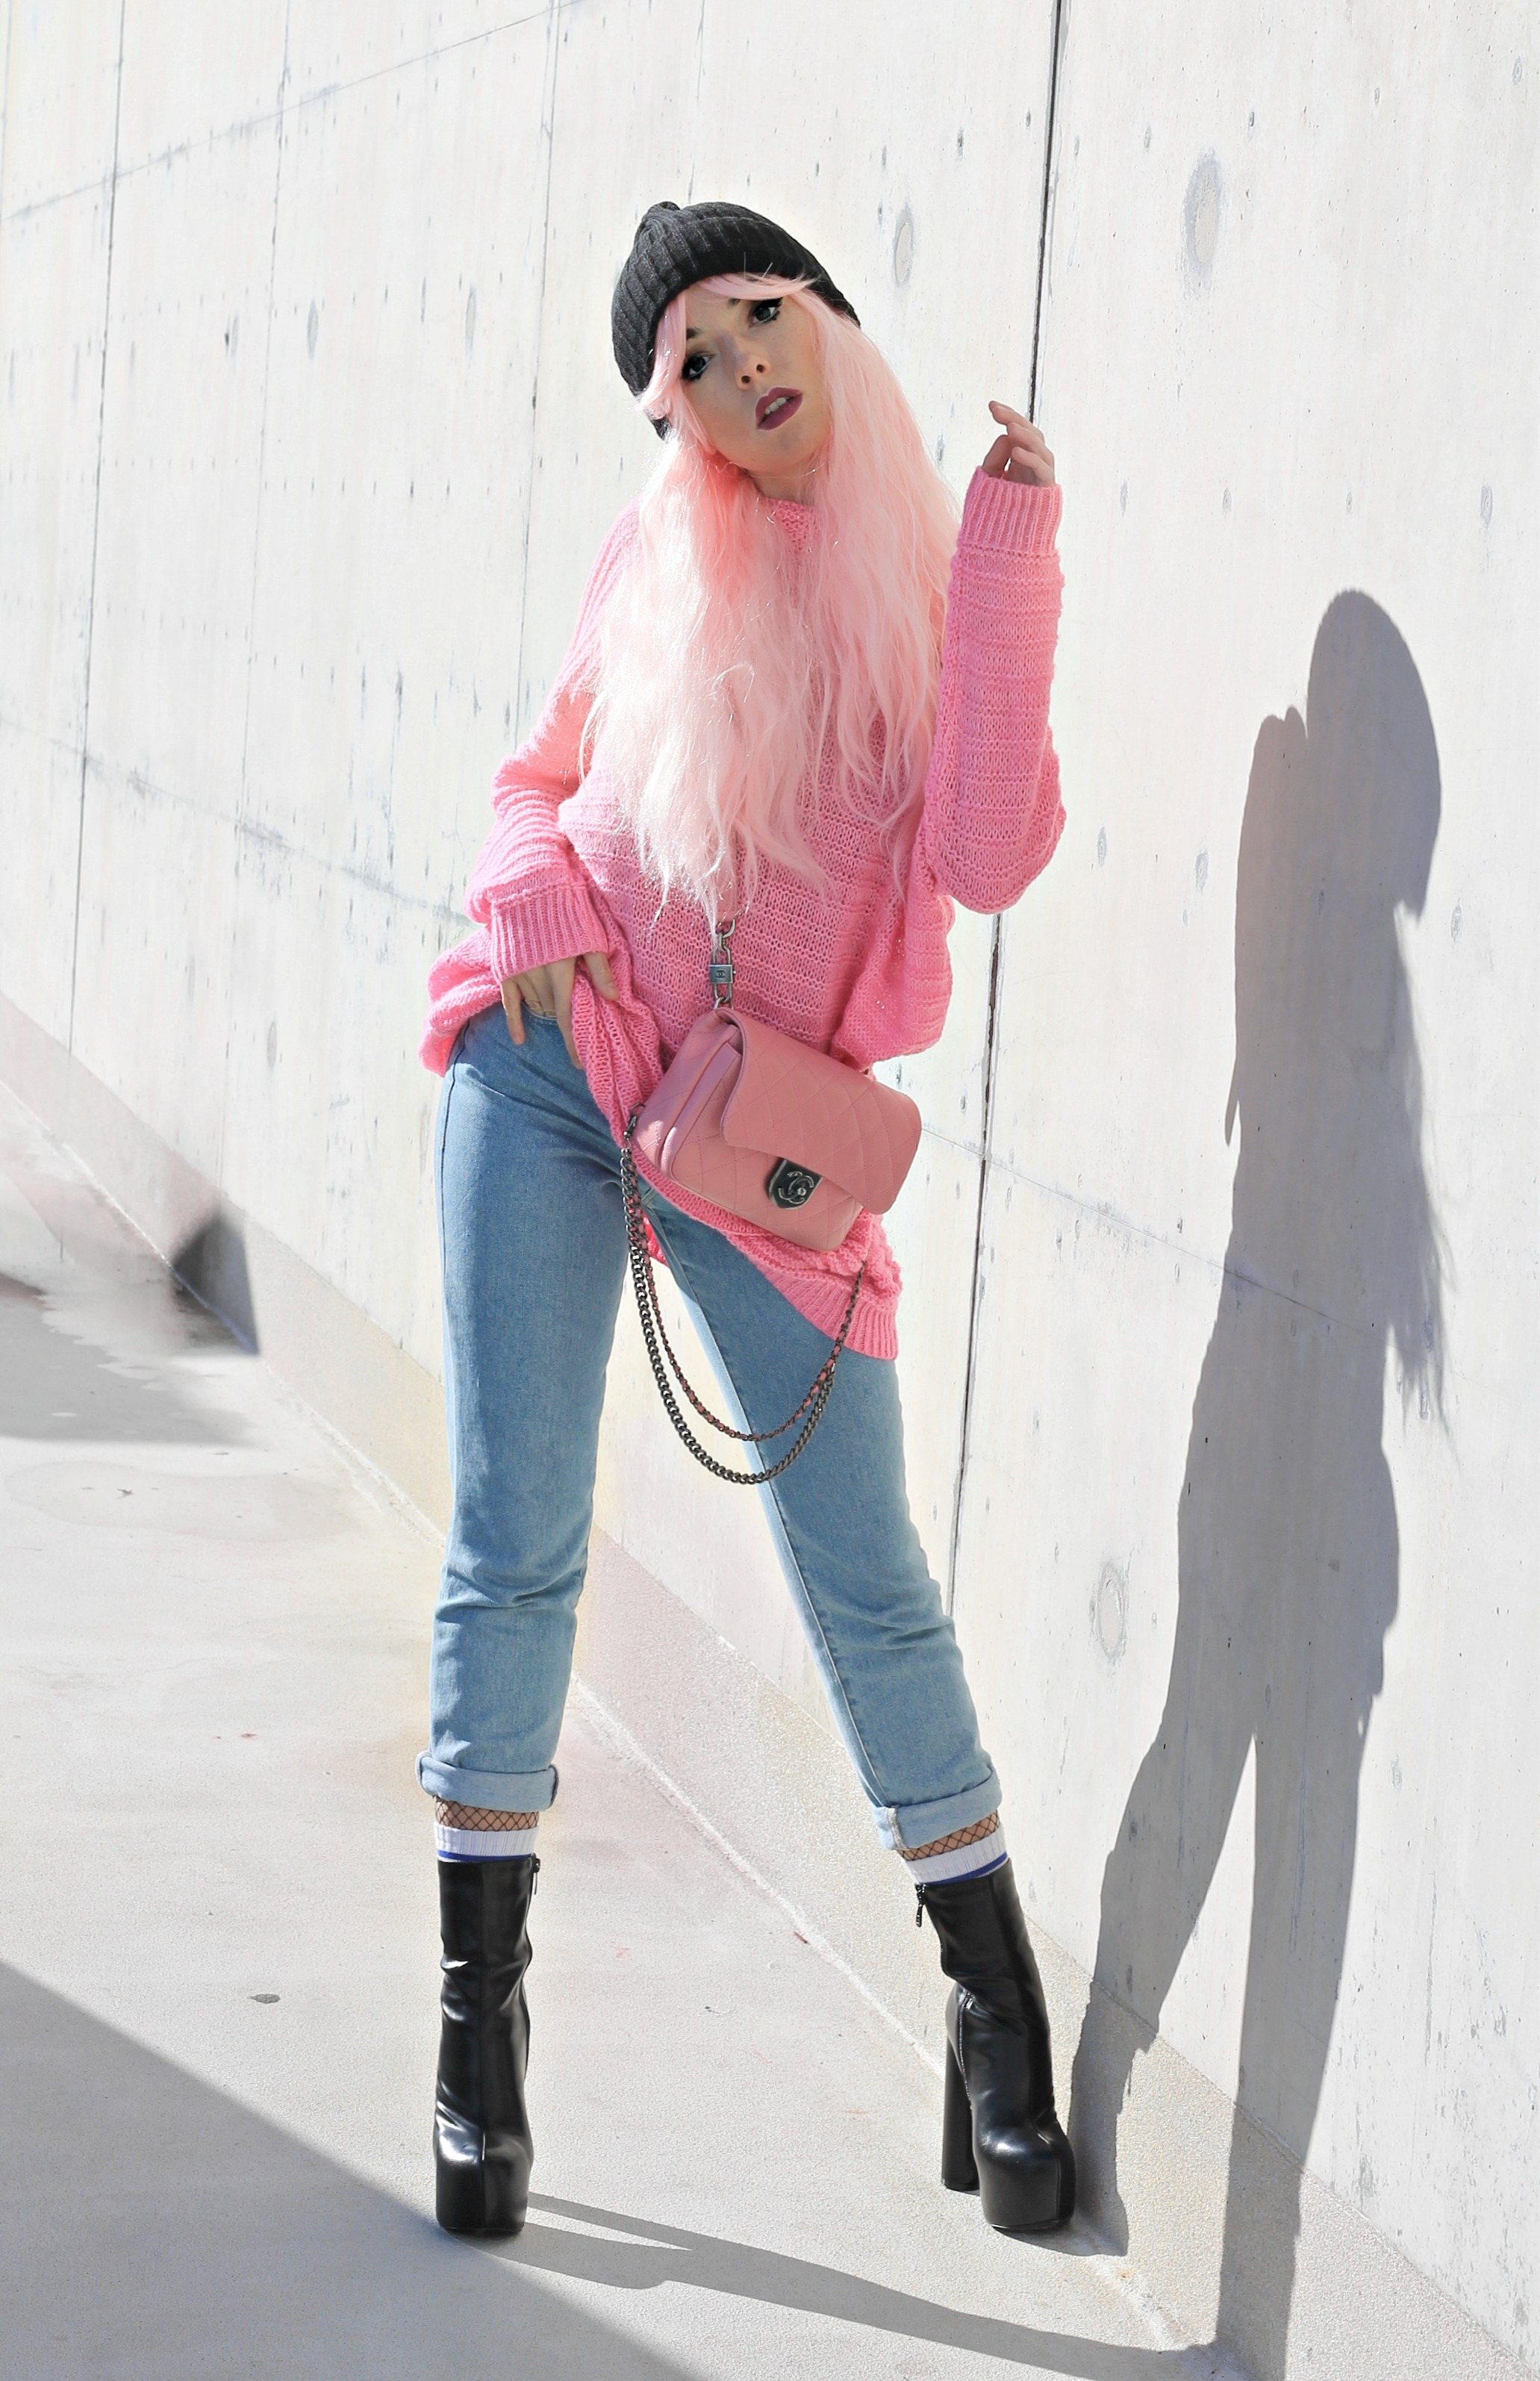 unicorni rosa, theladycracy.it, generazione y, elisa bellino, pink chanel bag, borsa chanel rosa, capelli rosa blogger, parrucche rosa, pink hair blogger, pink look 2017, blogger moda 2017, fashion blogger italia 2017, fashion blogger milano 2017, fashion blogger più seguite 2017, fashion blogger famose 2017, stivaletti plateau, unicorni mania,